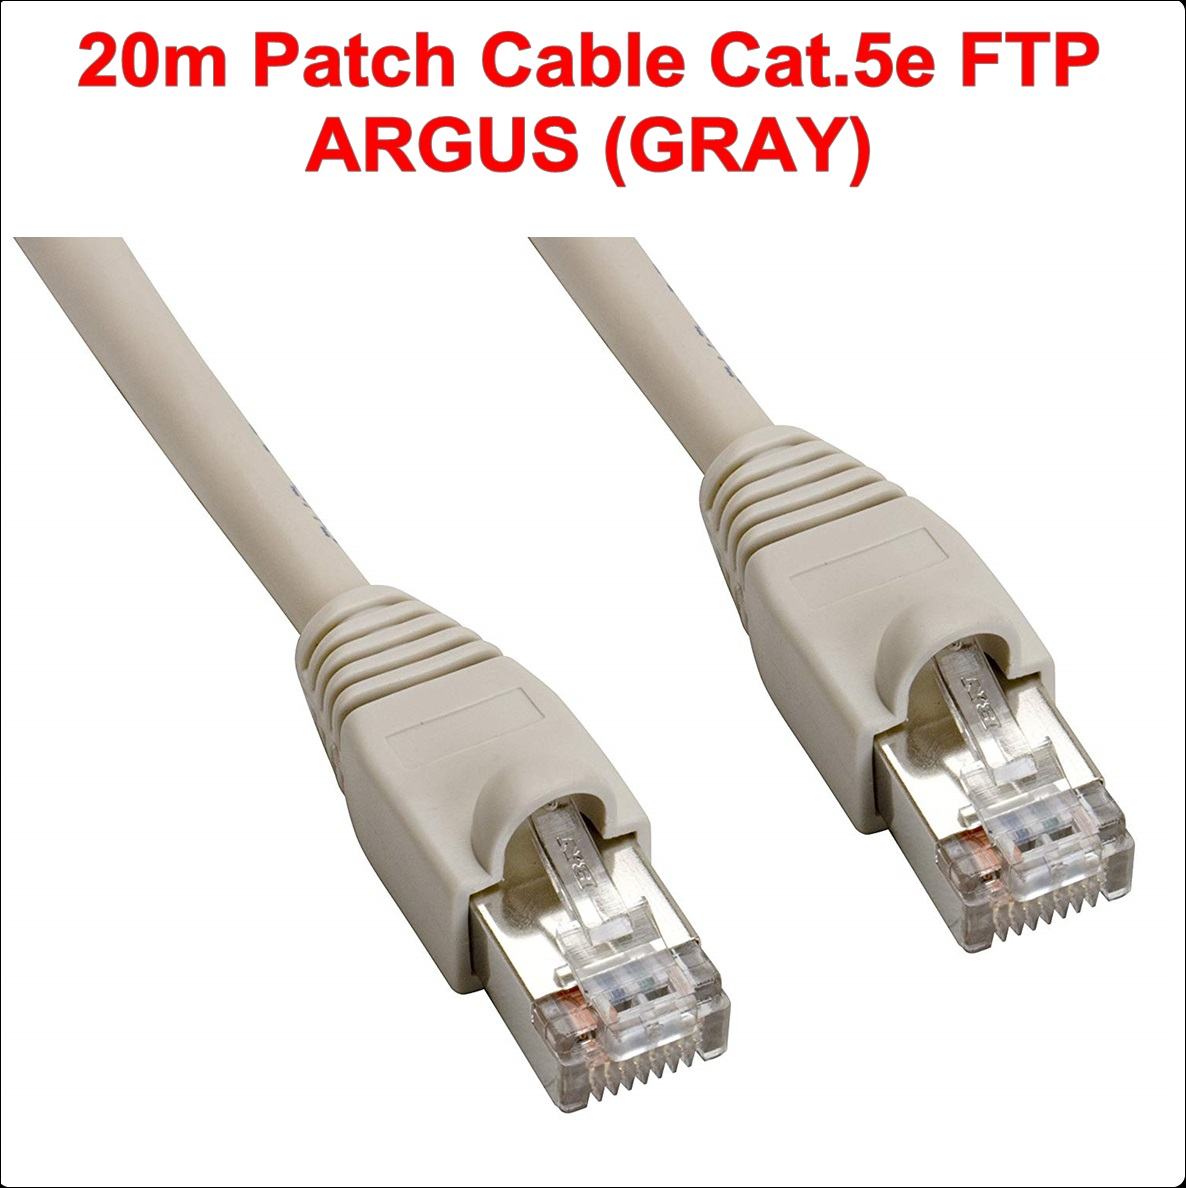 20.00m FTP Patch Cable Cat.5e ARGUS (GRAY)